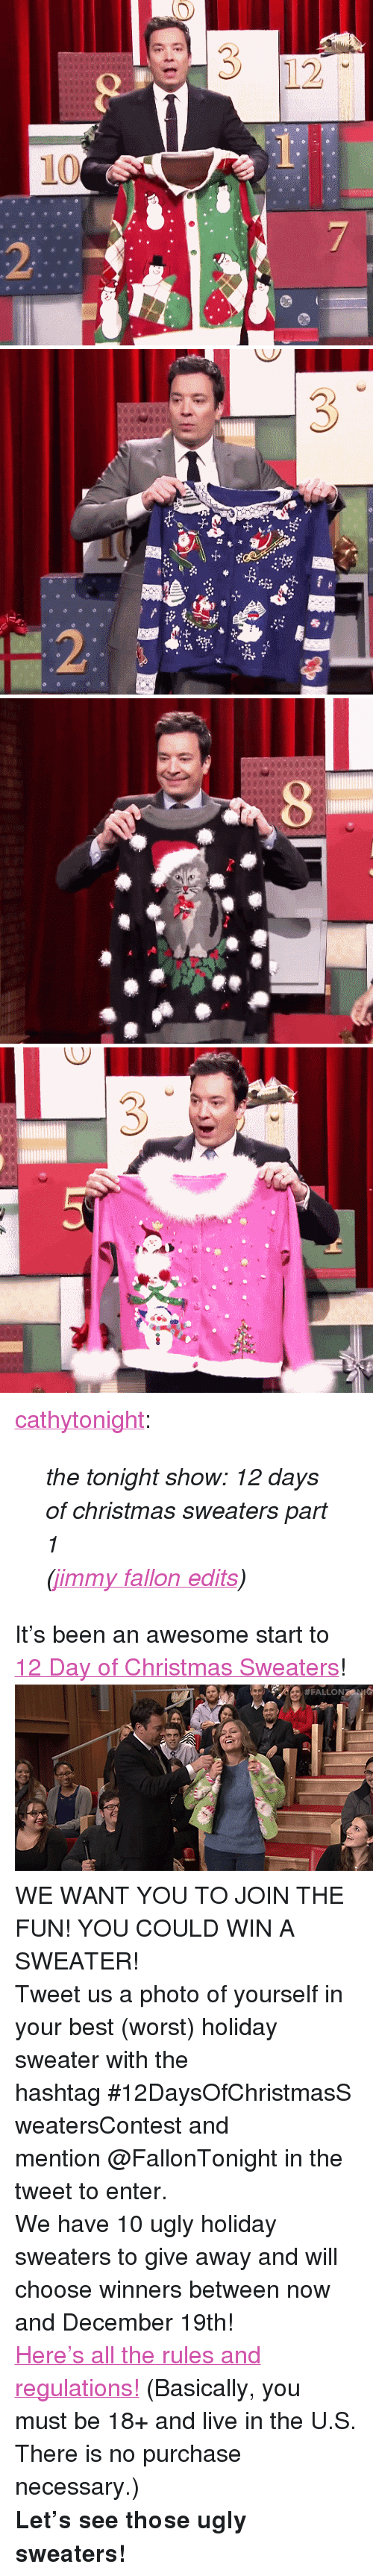 "ugly sweaters: <p><a class=""tumblr_blog"" href=""http://cathytonight.tumblr.com/post/105285898352"" target=""_blank"">cathytonight</a>:</p> <blockquote> <p><em>the tonight show: 12 days of christmas sweaters part 1</em></p> <p><em>(<a href=""http://cathytonight.tumblr.com/tagged/best+edits"" target=""_blank"">jimmy fallon edits</a>)</em></p> </blockquote> <p>It&rsquo;s been an awesome start to <a href=""https://www.youtube.com/watch?v=MZChq0bT1_0"" target=""_blank"">12 Day of Christmas Sweaters</a>! <img alt="""" src=""https://78.media.tumblr.com/082f495f9f16ad7975e41fea9532d6c7/tumblr_ngnc0shZJ31qhub34o3_r1_500.gif""/></p> <p><span>WE WANT YOU TO JOIN THE FUN! YOU COULD WIN A SWEATER! </span></p> <p>Tweet us a photo of yourself in your best (worst) holiday sweater with the hashtag <span><span>#12DaysOfChristmasSweatersContest</span> </span>and mention <span>@FallonTonight </span>in the tweet to enter. </p> <p>We have 10 ugly holiday sweaters to give away and will choose winners between now and December 19th! </p> <p><a href=""http://www.nbc.com/the-tonight-show/blogs/85391"" target=""_blank"">Here's all the rules and regulations!</a> (Basically, you must be 18+ and live in the U.S. There is no purchase necessary.)</p> <p><strong>Let&rsquo;s see those ugly sweaters! </strong></p>"